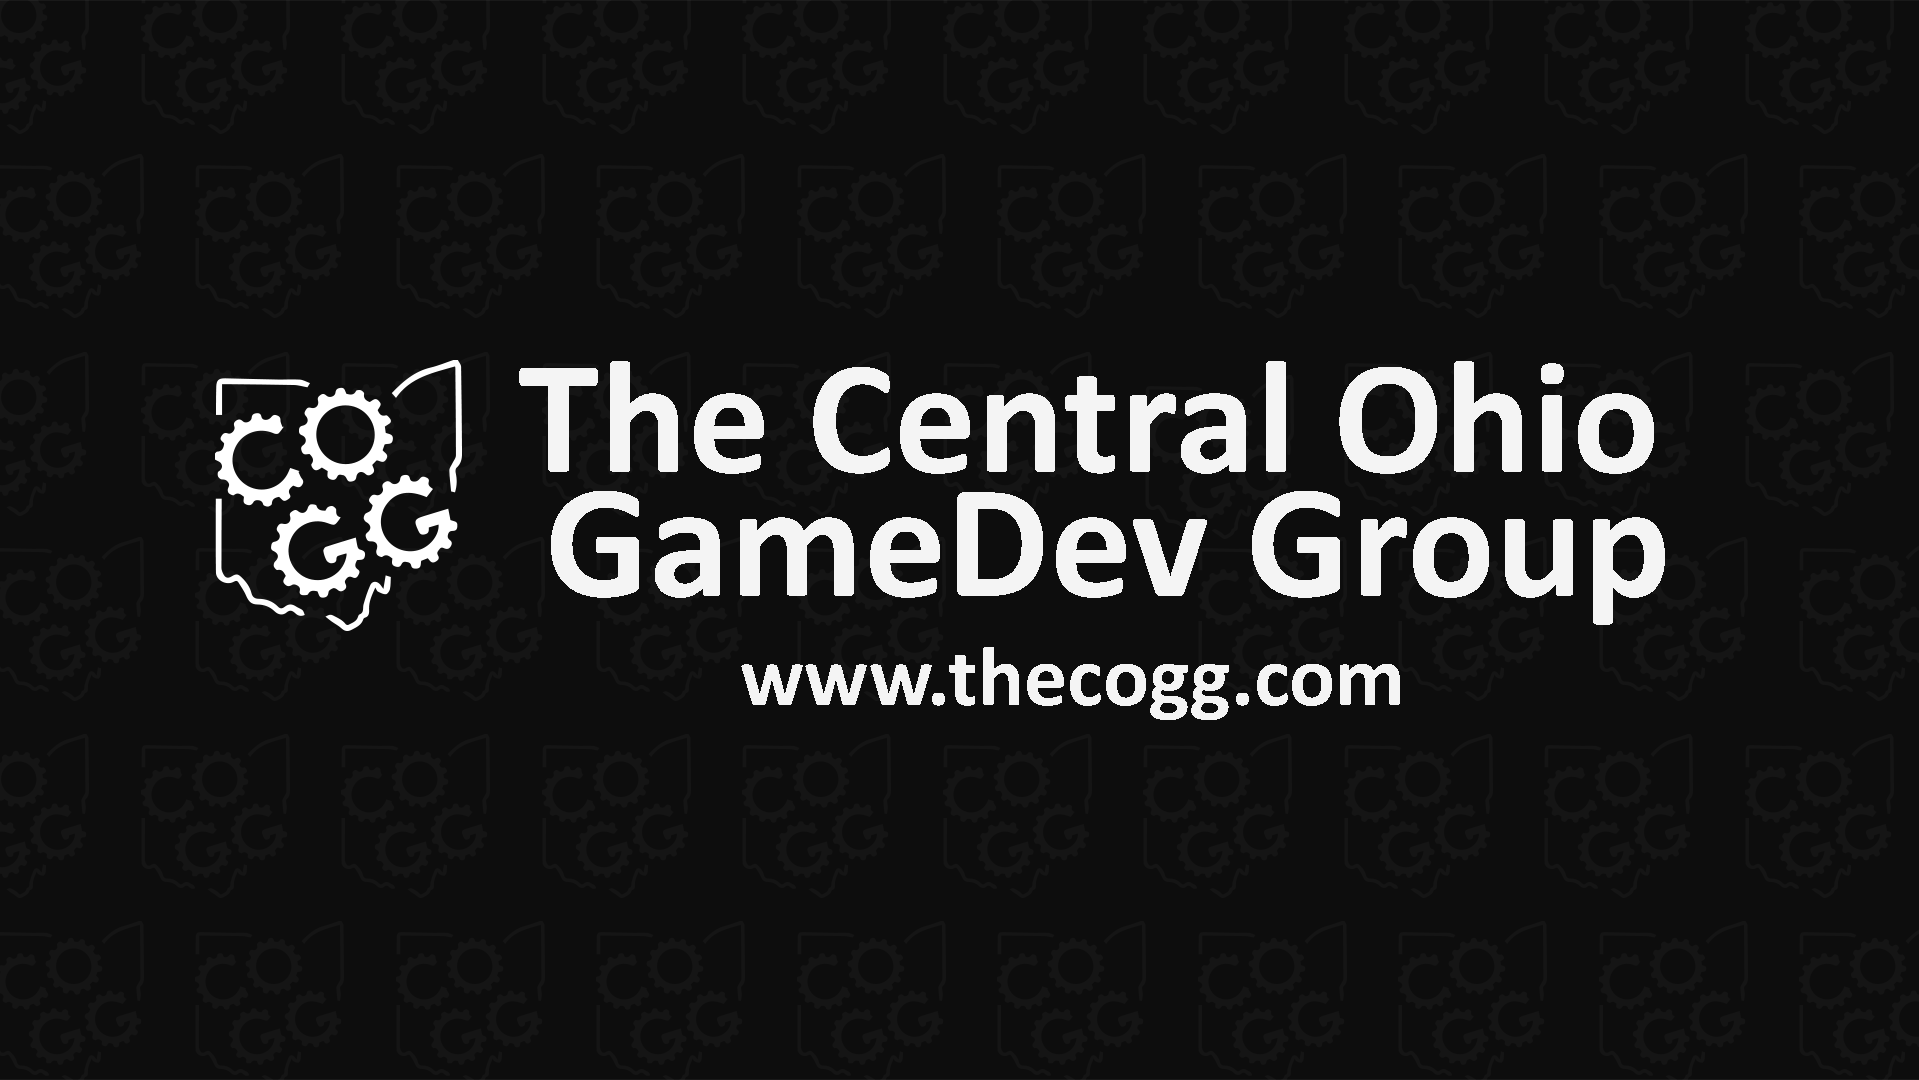 The Central Ohio Gamedev Group